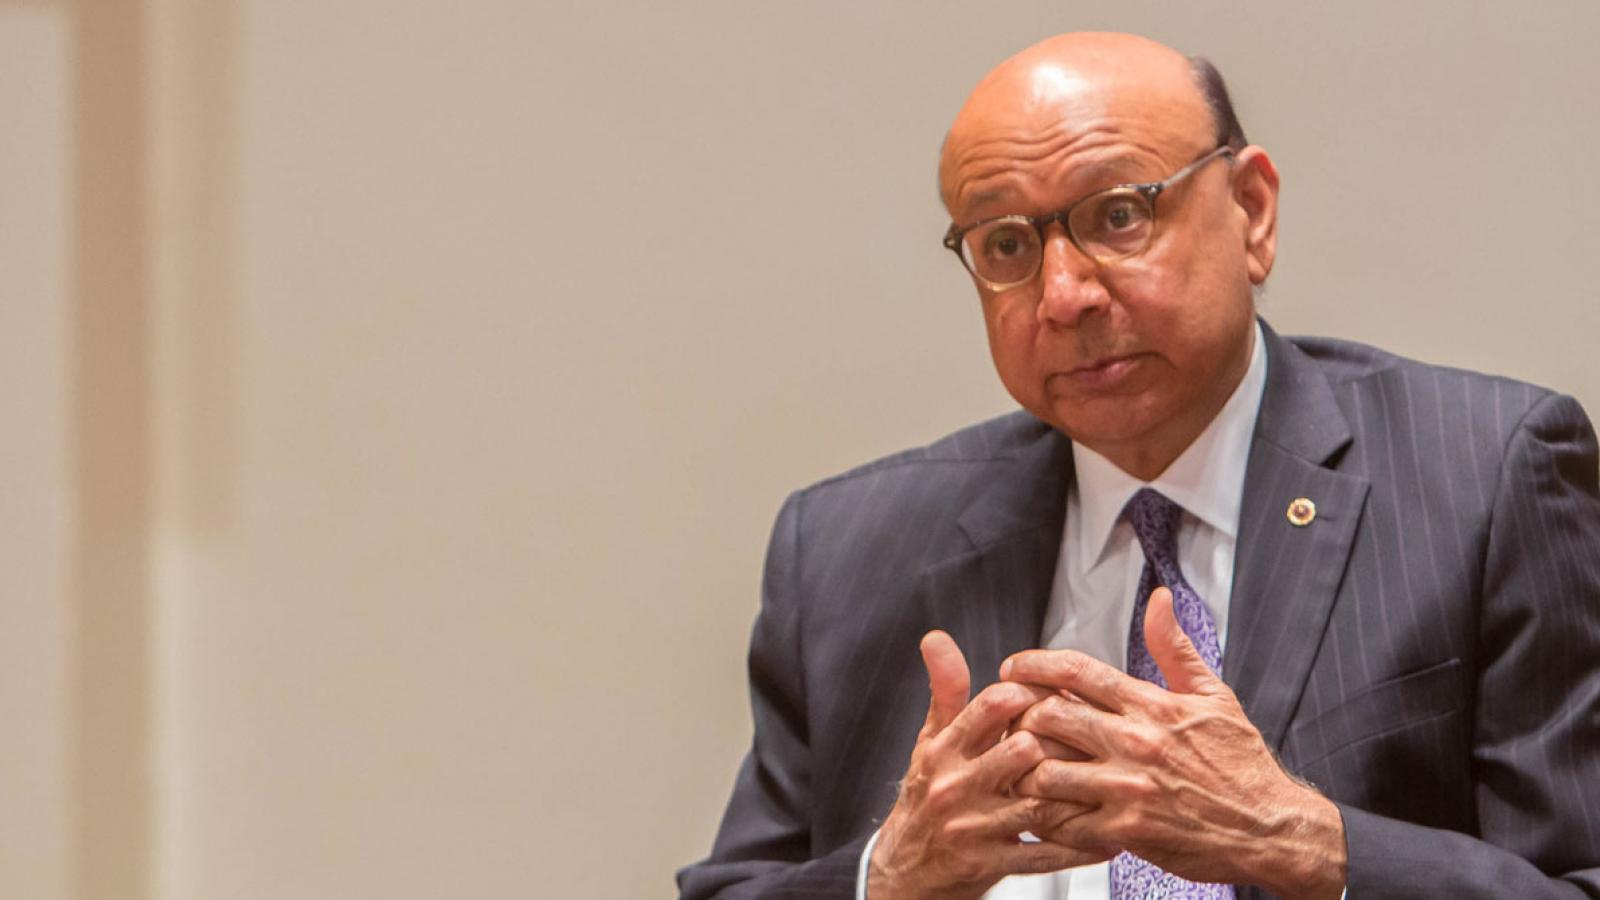 Khizr Khan takes questions from the American Forum studio audience